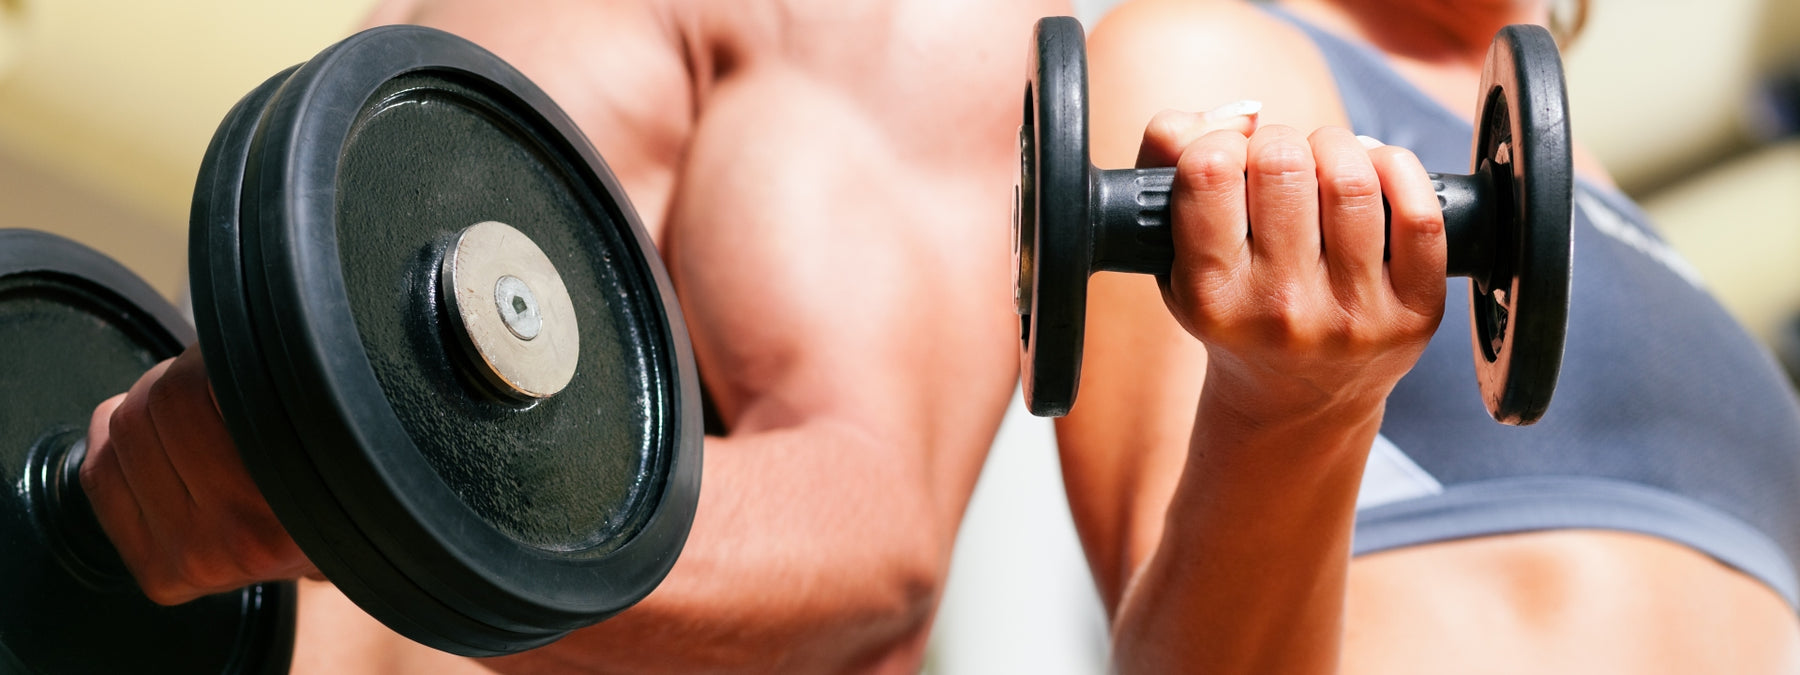 Studies Suggest Lifting Weights Helps You Live Longer